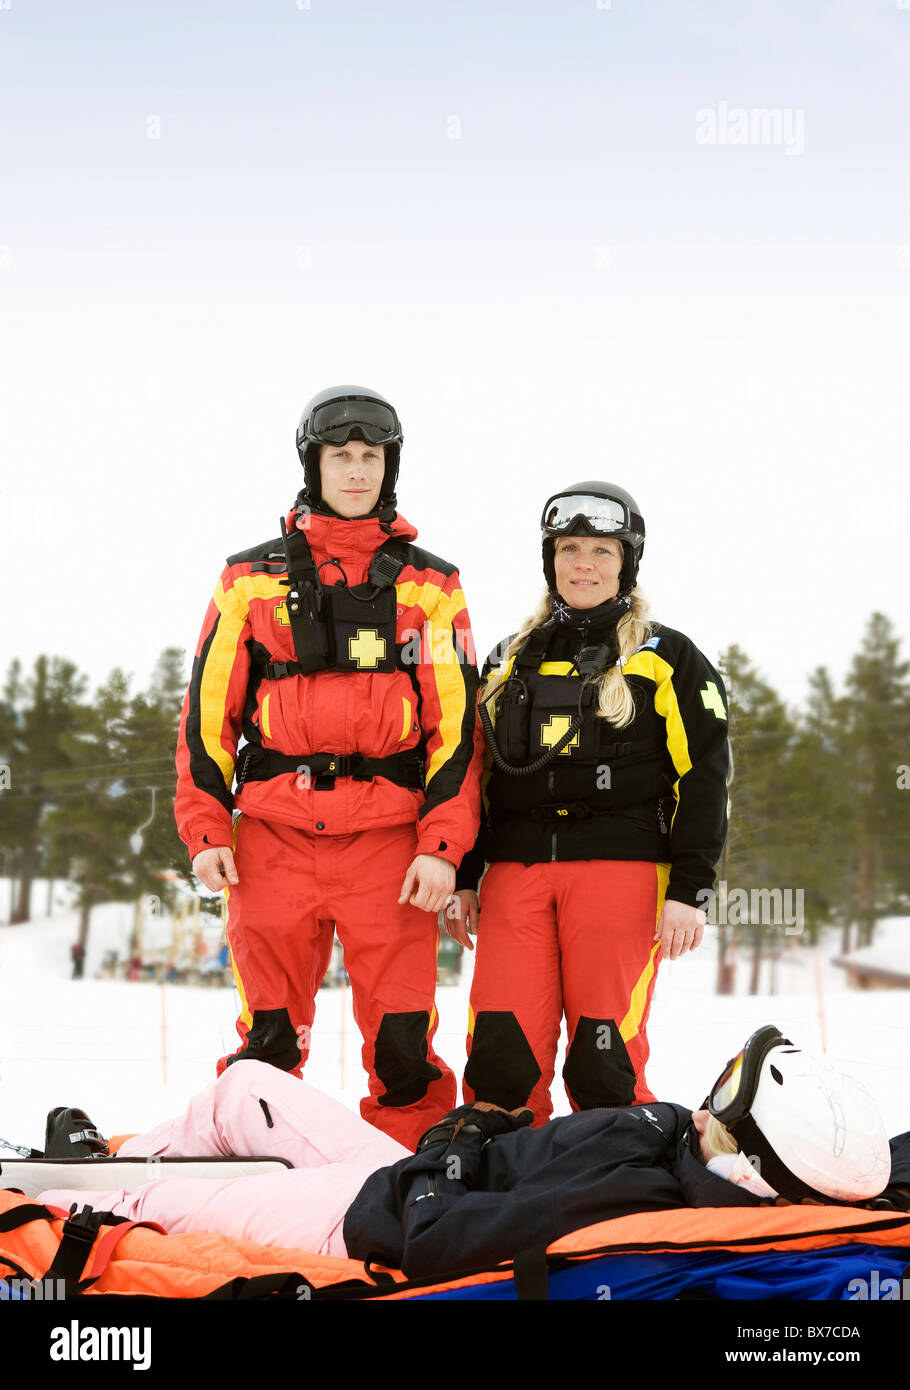 Rescue Team with Skier - Stock Image